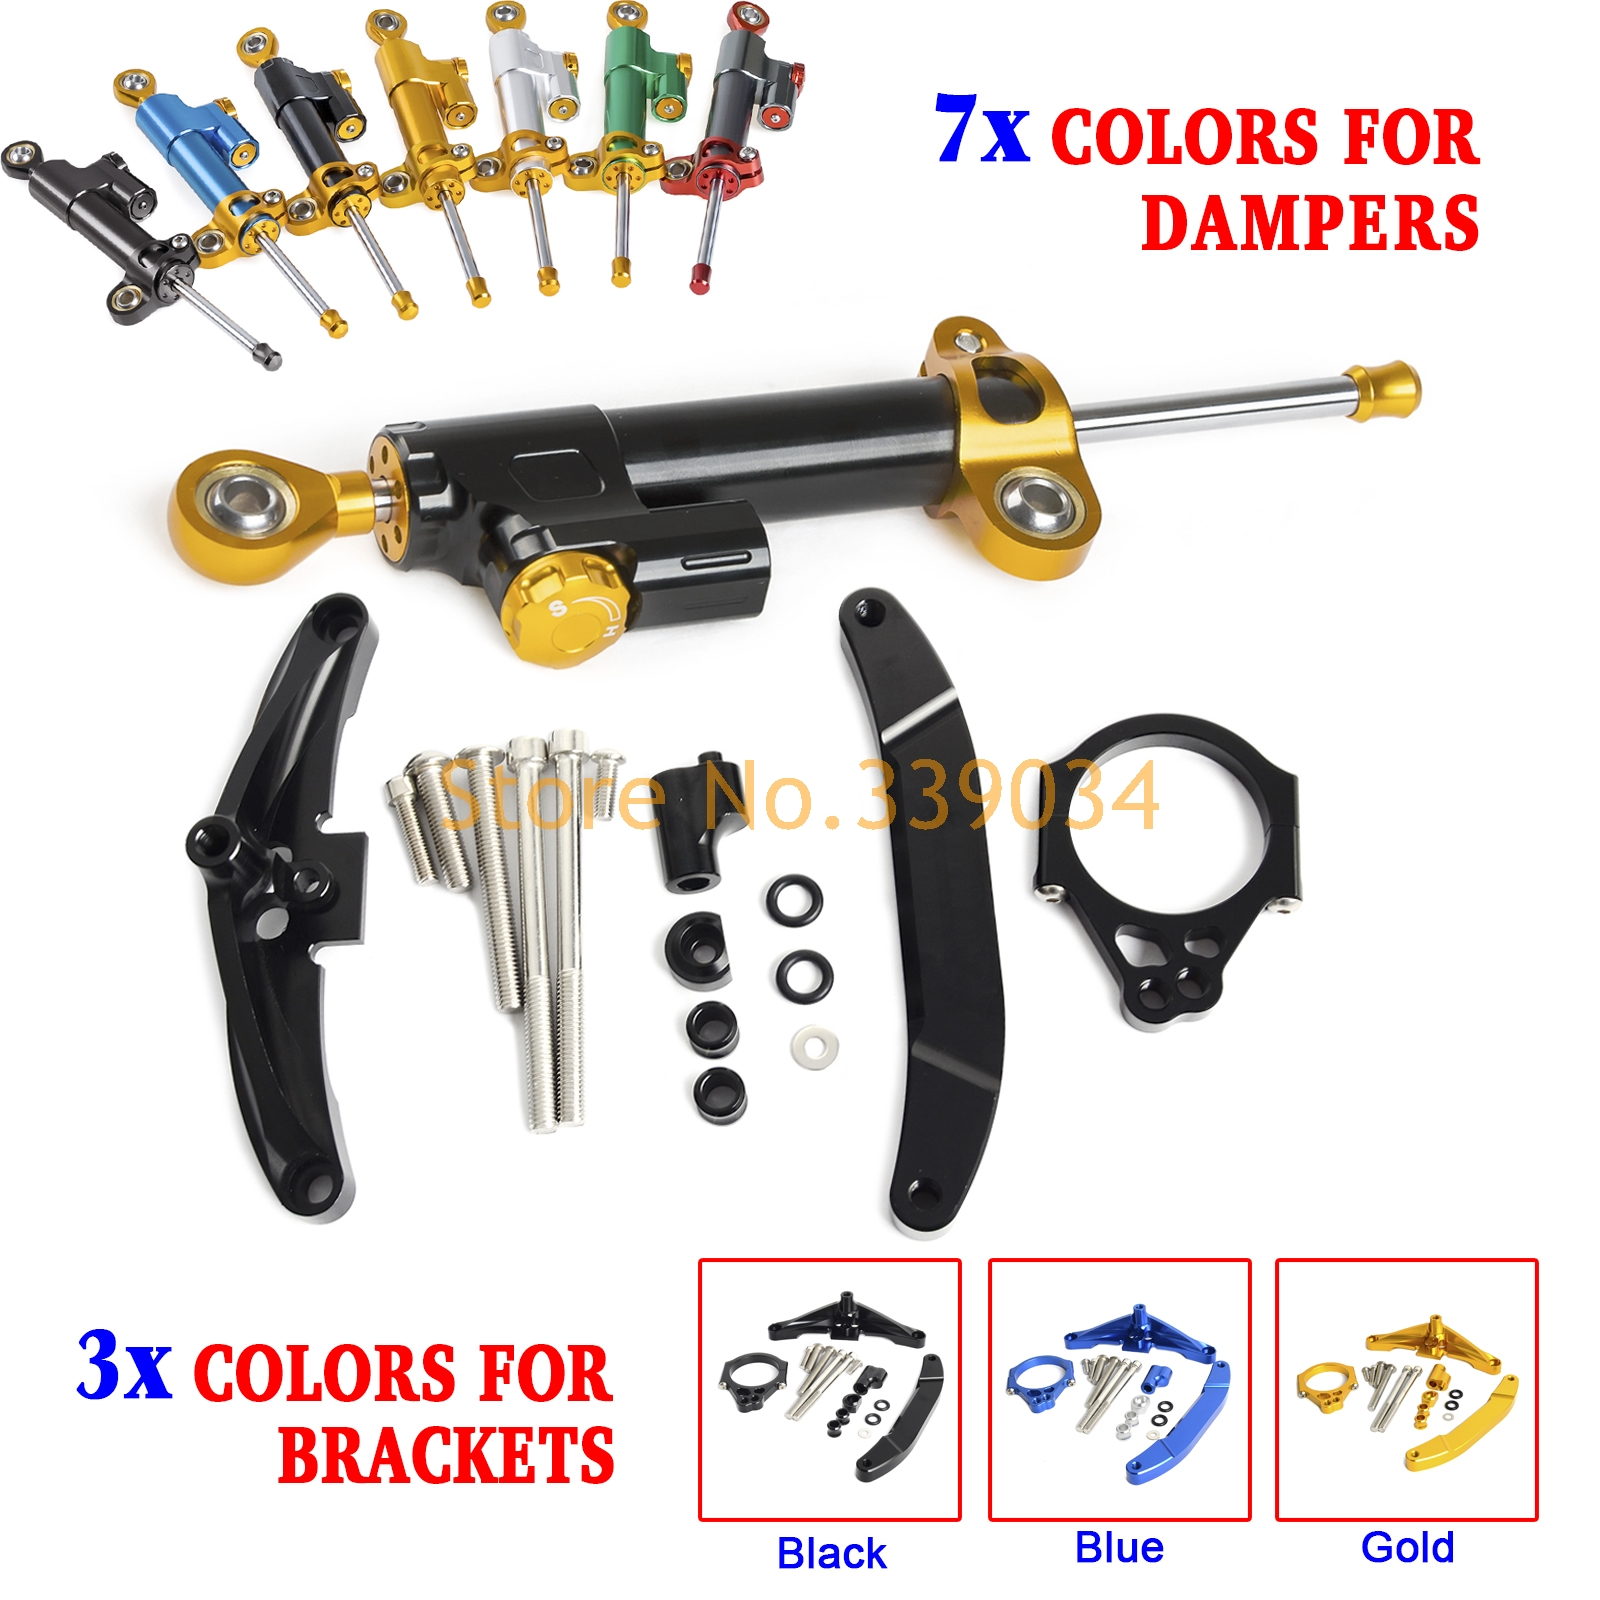 Motorcycle CNC Steering Damper Stabilizer & Bracket For Yamaha FZ1 FAZER  2006 2007 2008 2009 2010 -2015 aftermarket free shipping motorcycle parts eliminator tidy tail for 2006 2007 2008 fz6 fazer 2007 2008b lack